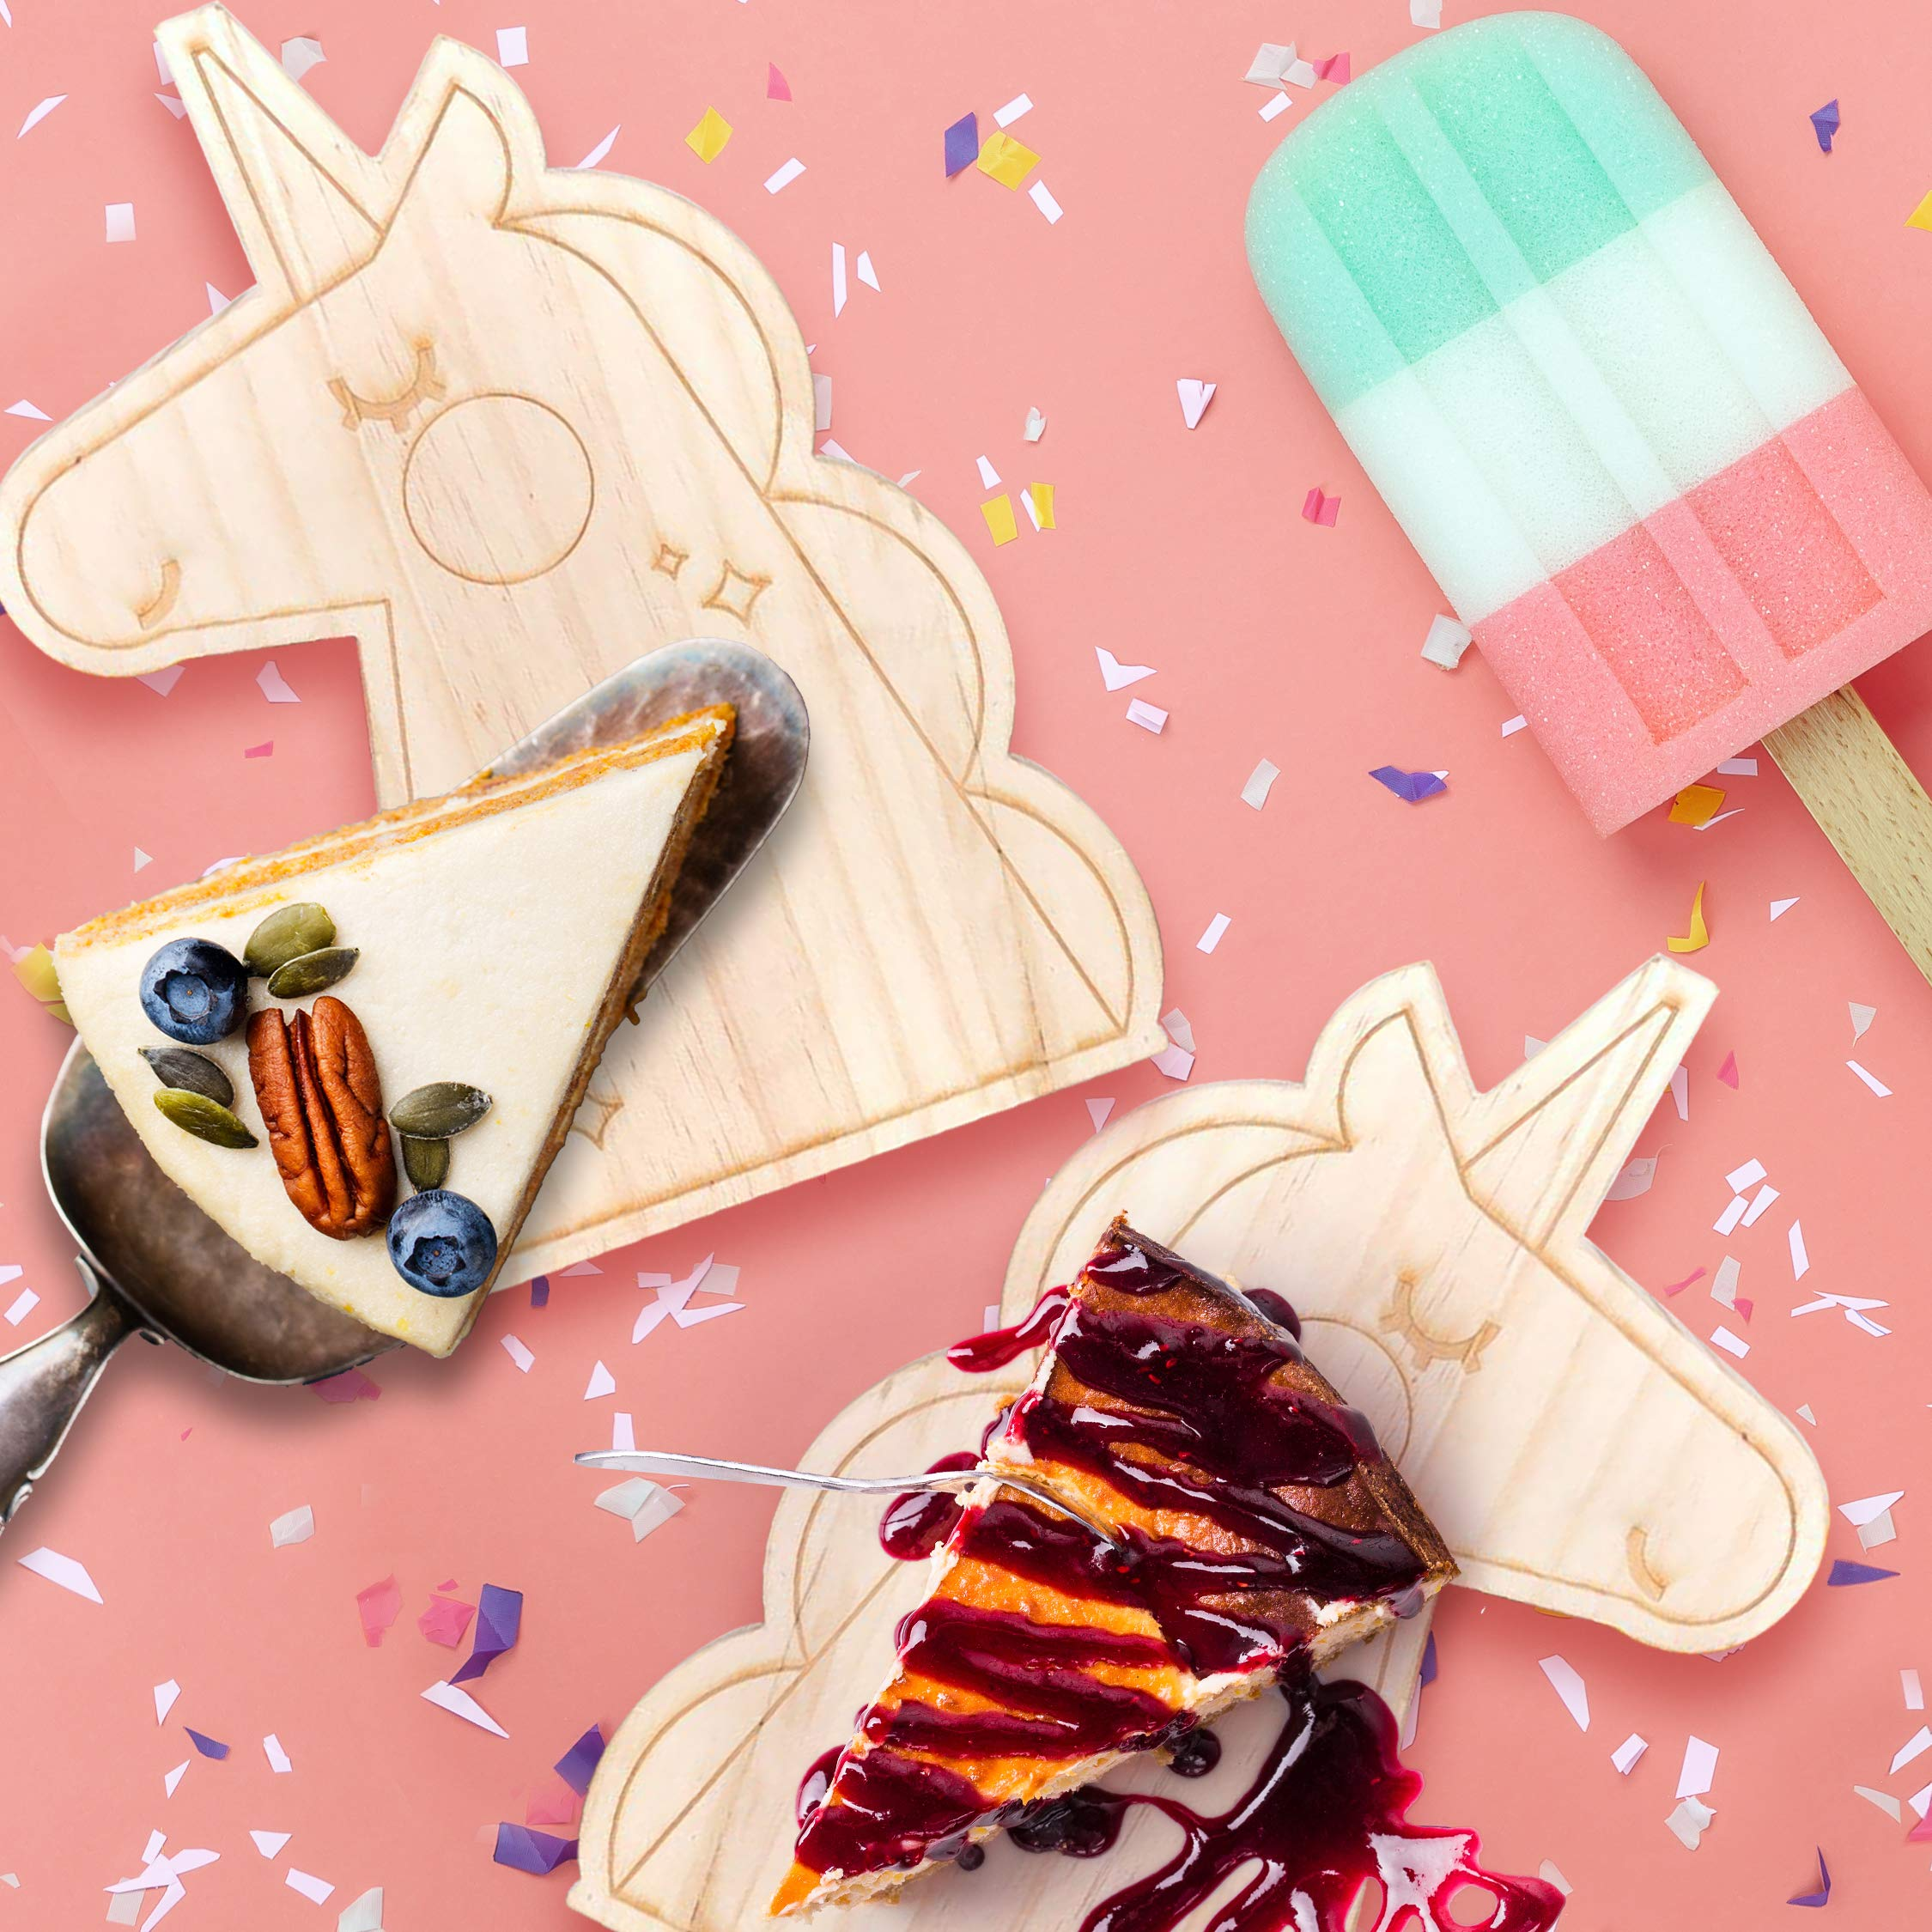 Pillow & Toast Unicorn Cake Wood Party Plate, Birthday Gift Magical Serving Trays for Parties Brunch and Breakfast, Unicorn Kids Gifts by Pillow & Toast (Image #5)